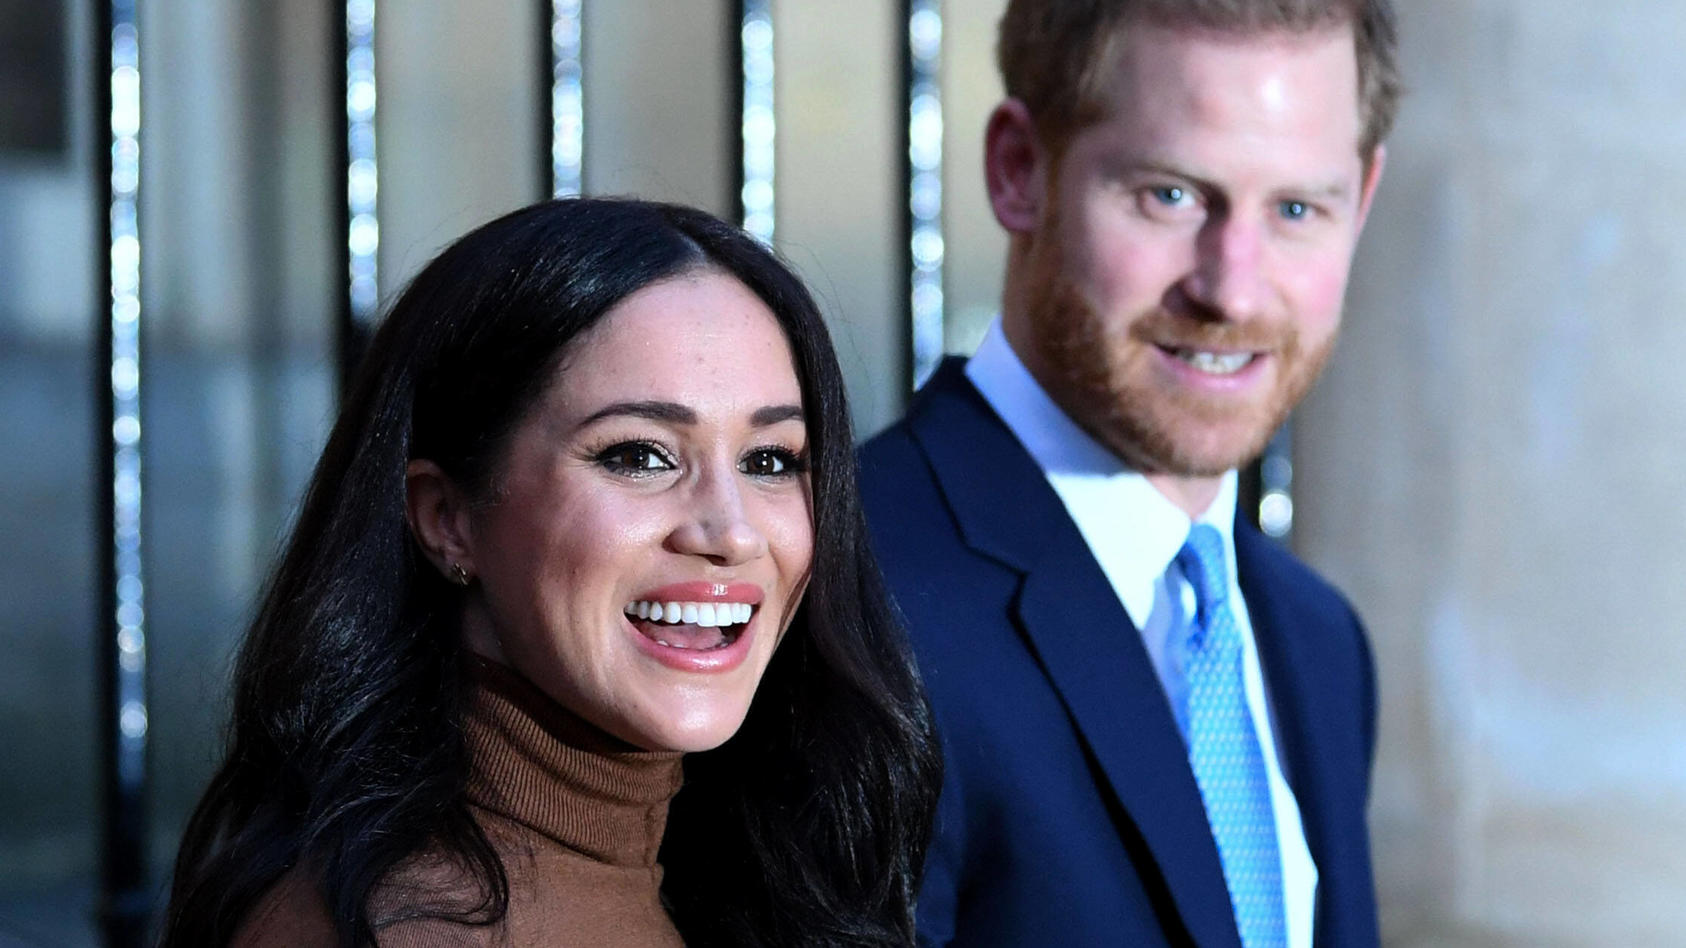 . 07/01/2020. London, United Kingdom. Prince Harry and Meghan Markle, the Duke and Duchess of Sussex, at Canada House i